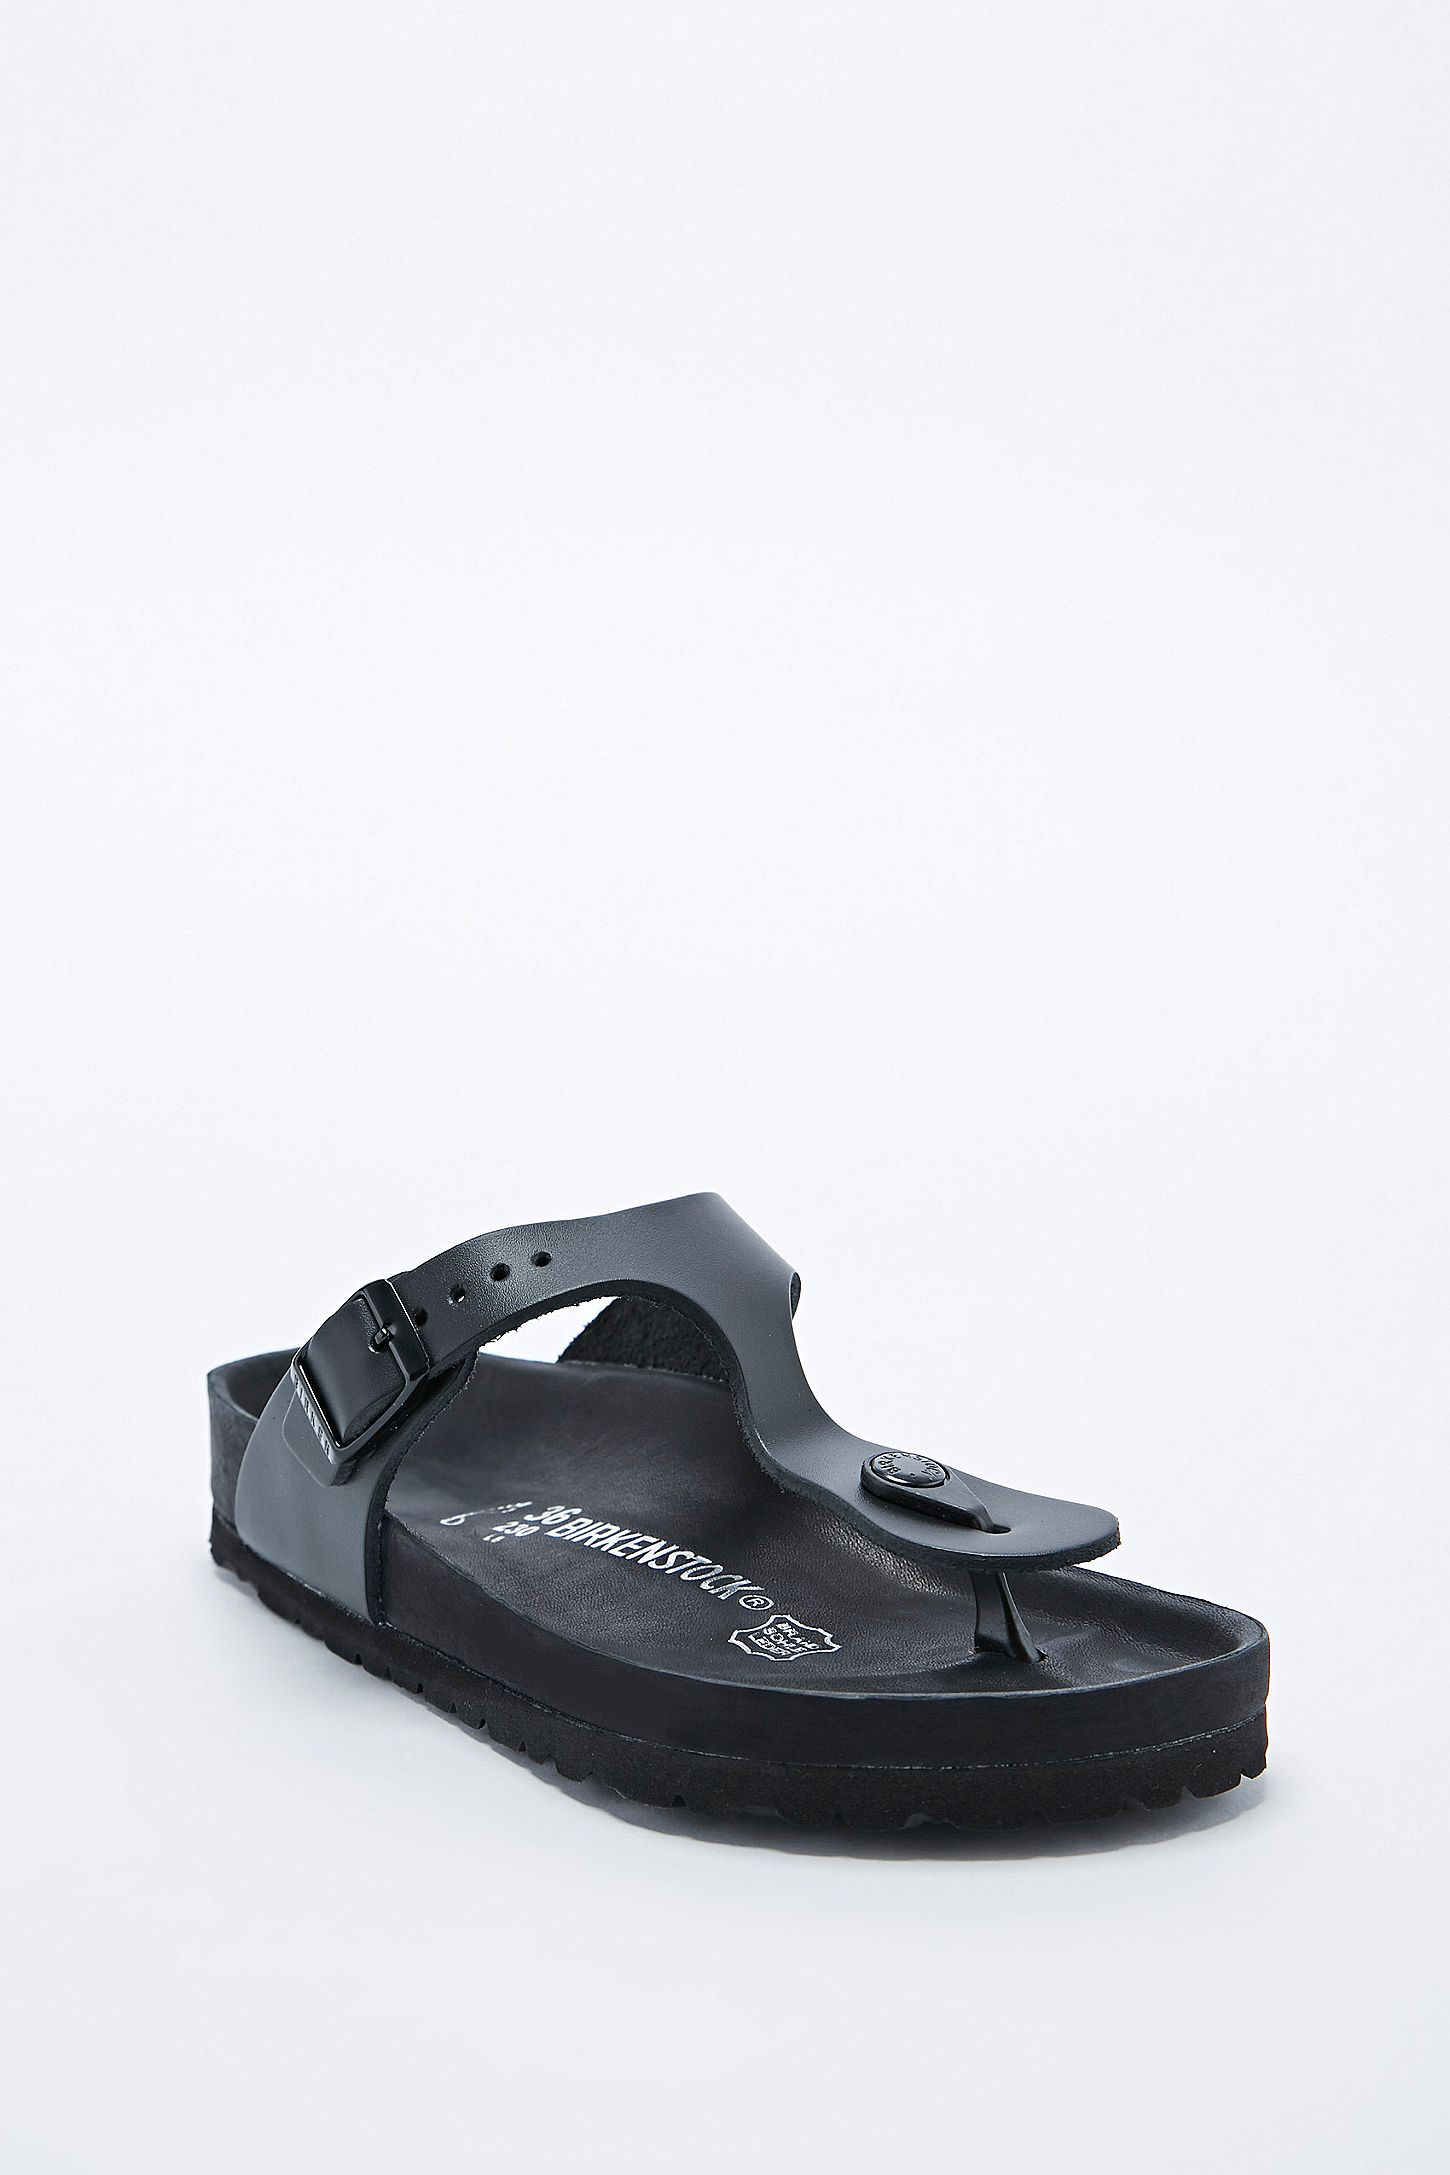 381072b8a776 Birkenstock Gizeh Exquisite Leather Sandals in Black